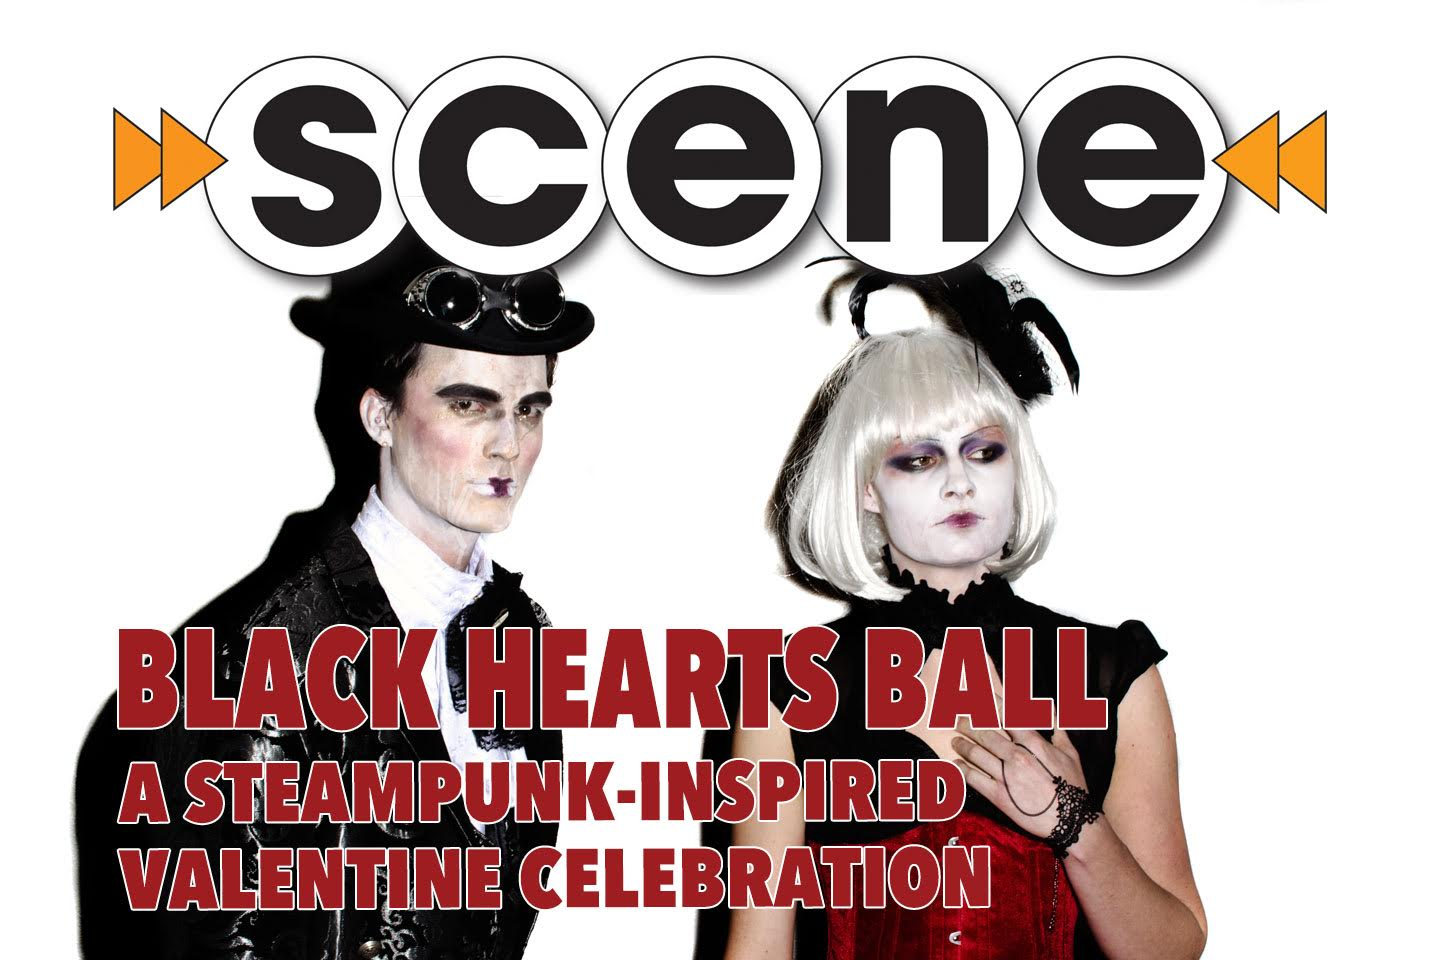 BLACK HEARTS BALL SET FOR FEBRUARY 12